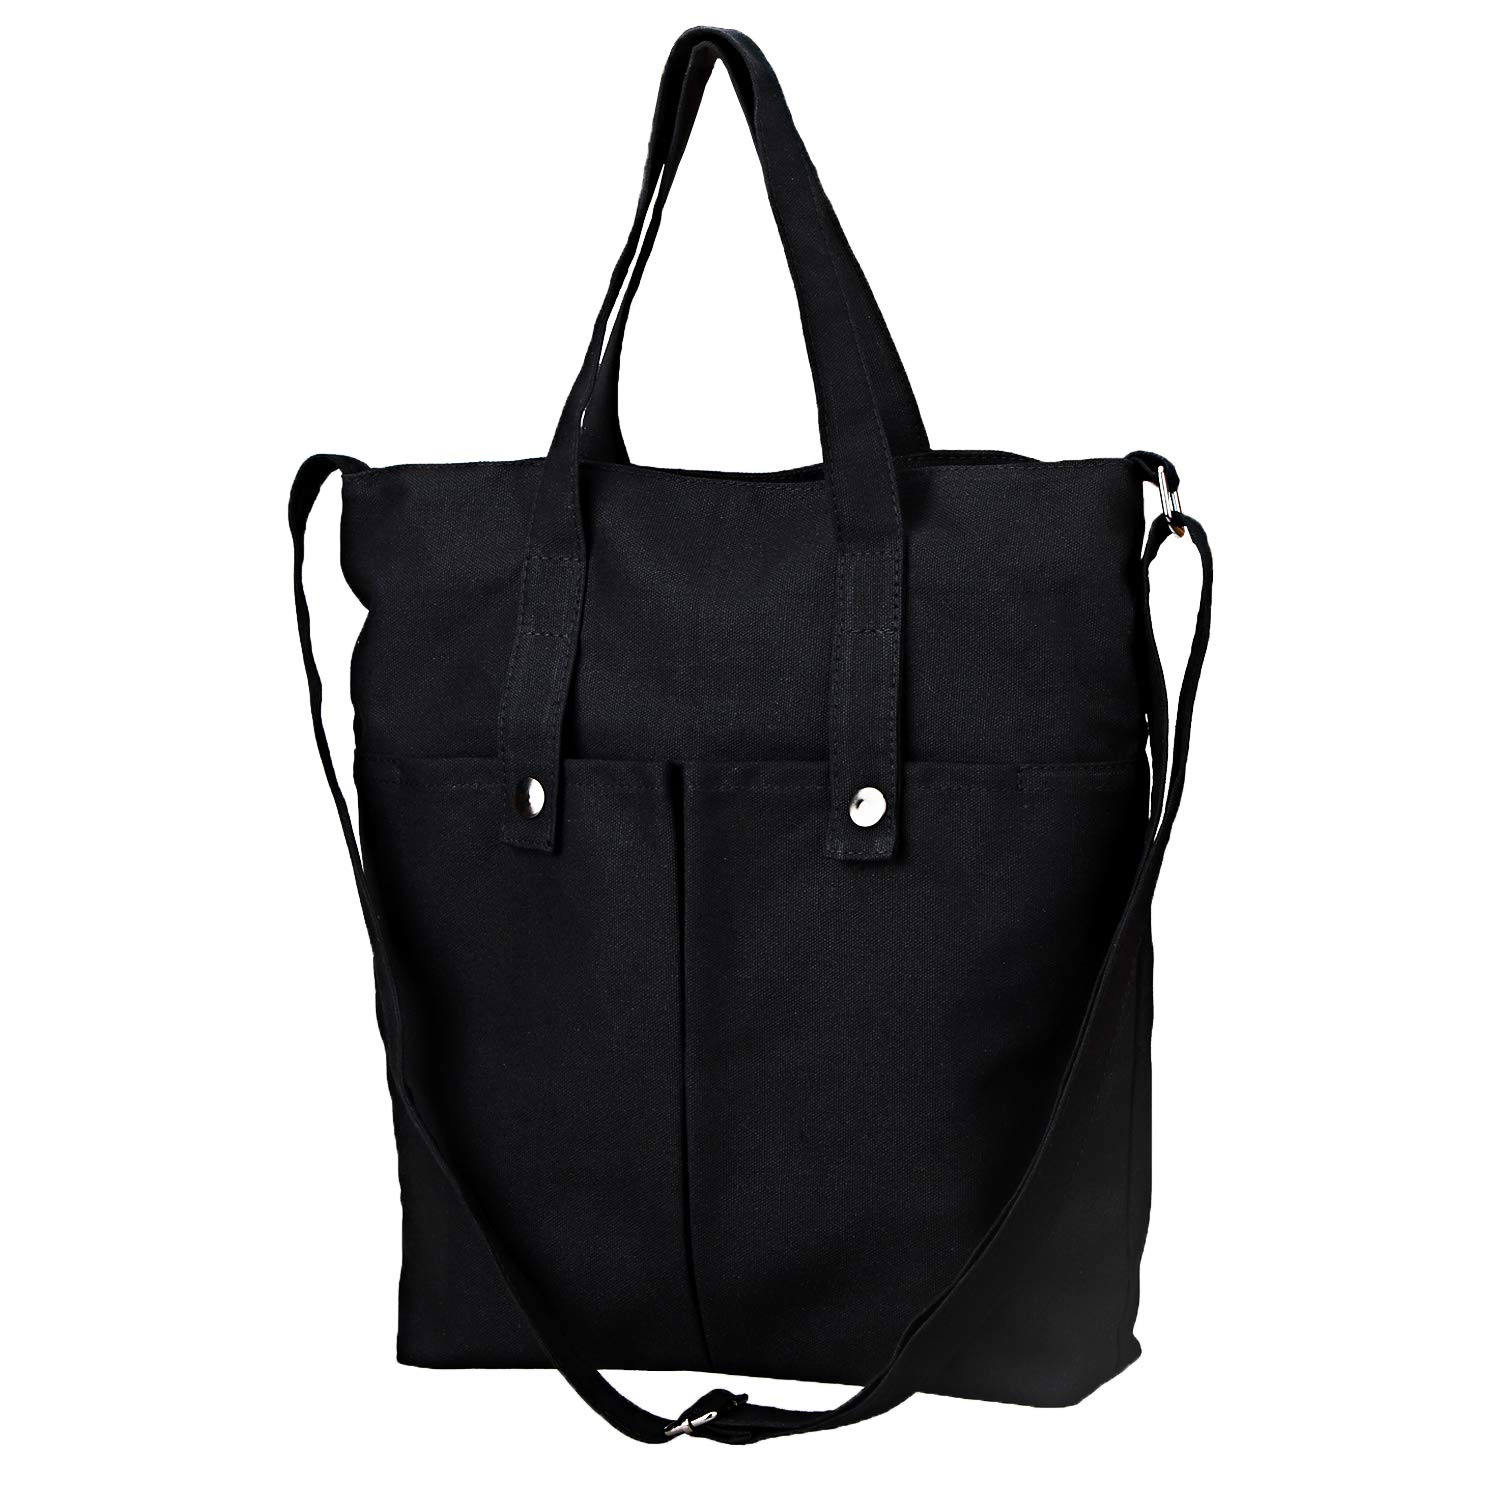 COMPACT SHOULDER STRAP CARRY BAG